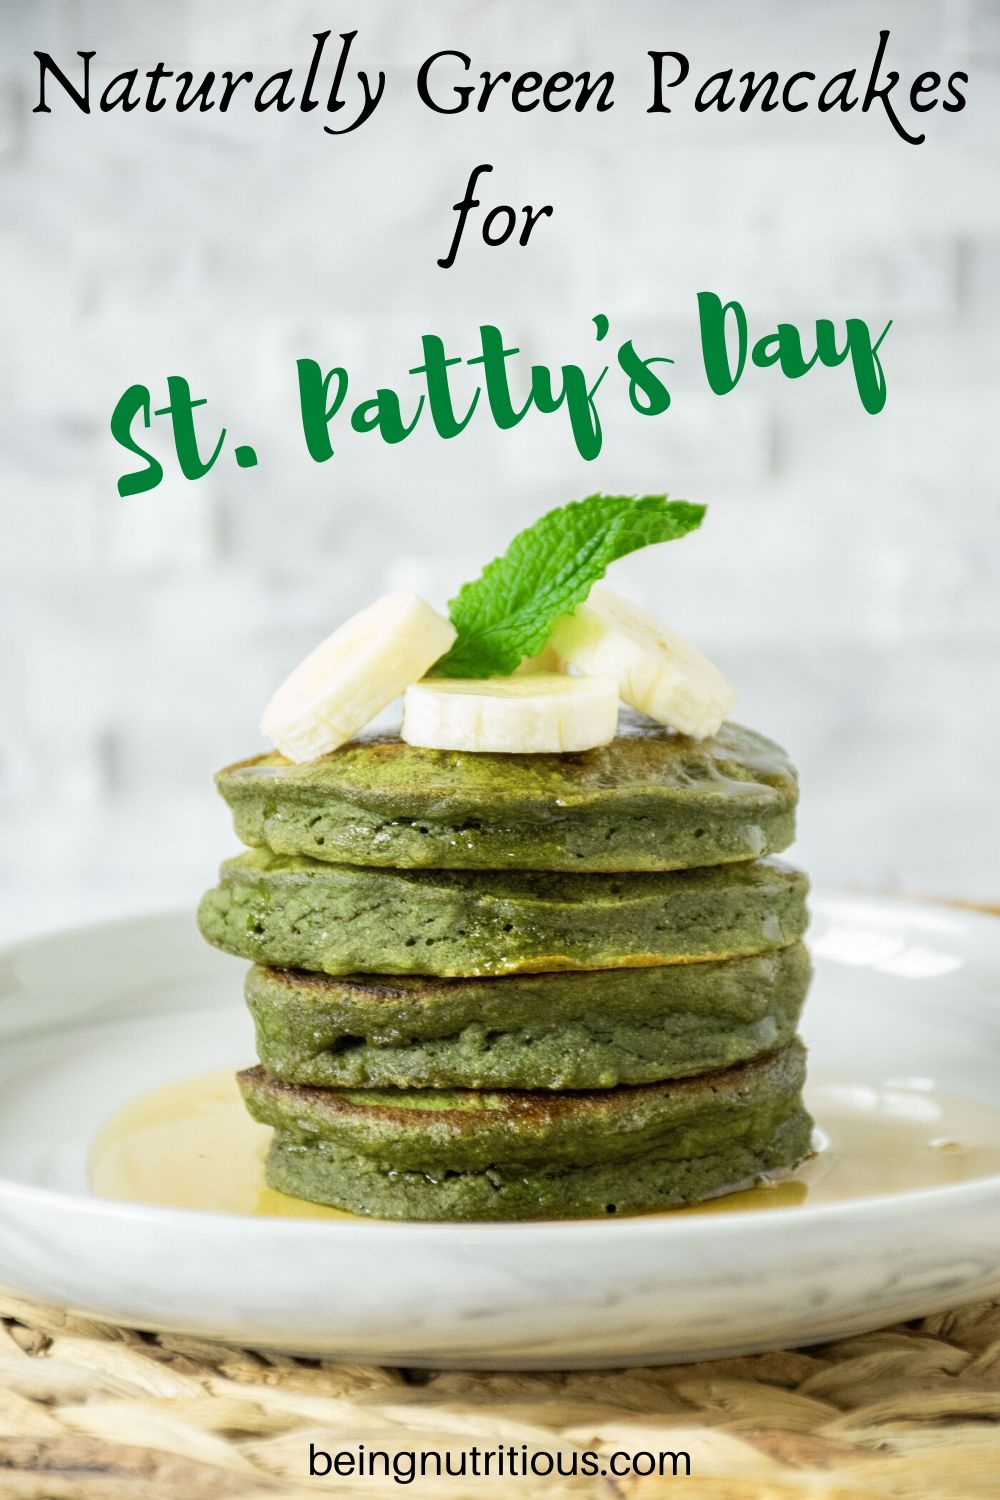 Stack of 4 Banana Mint Pancakes with banana slices and a mint leaf on top.